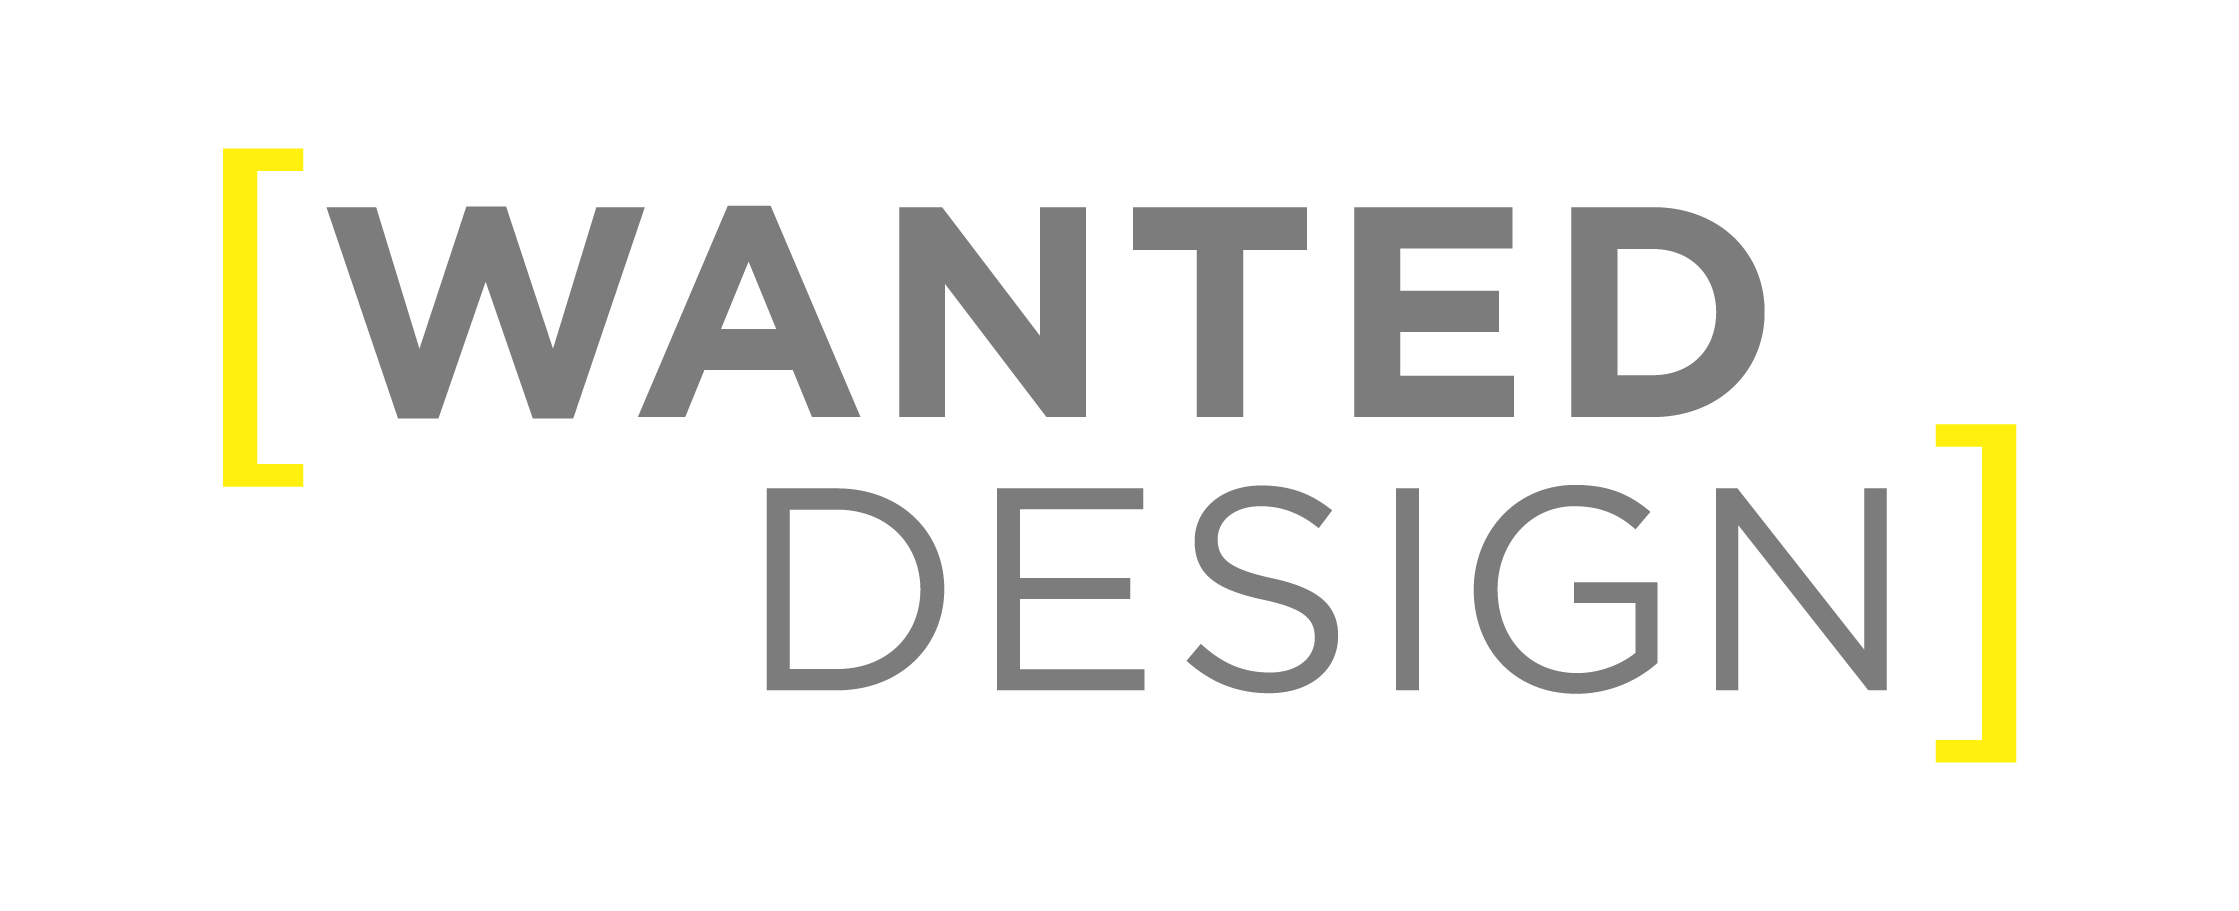 WantedDesign